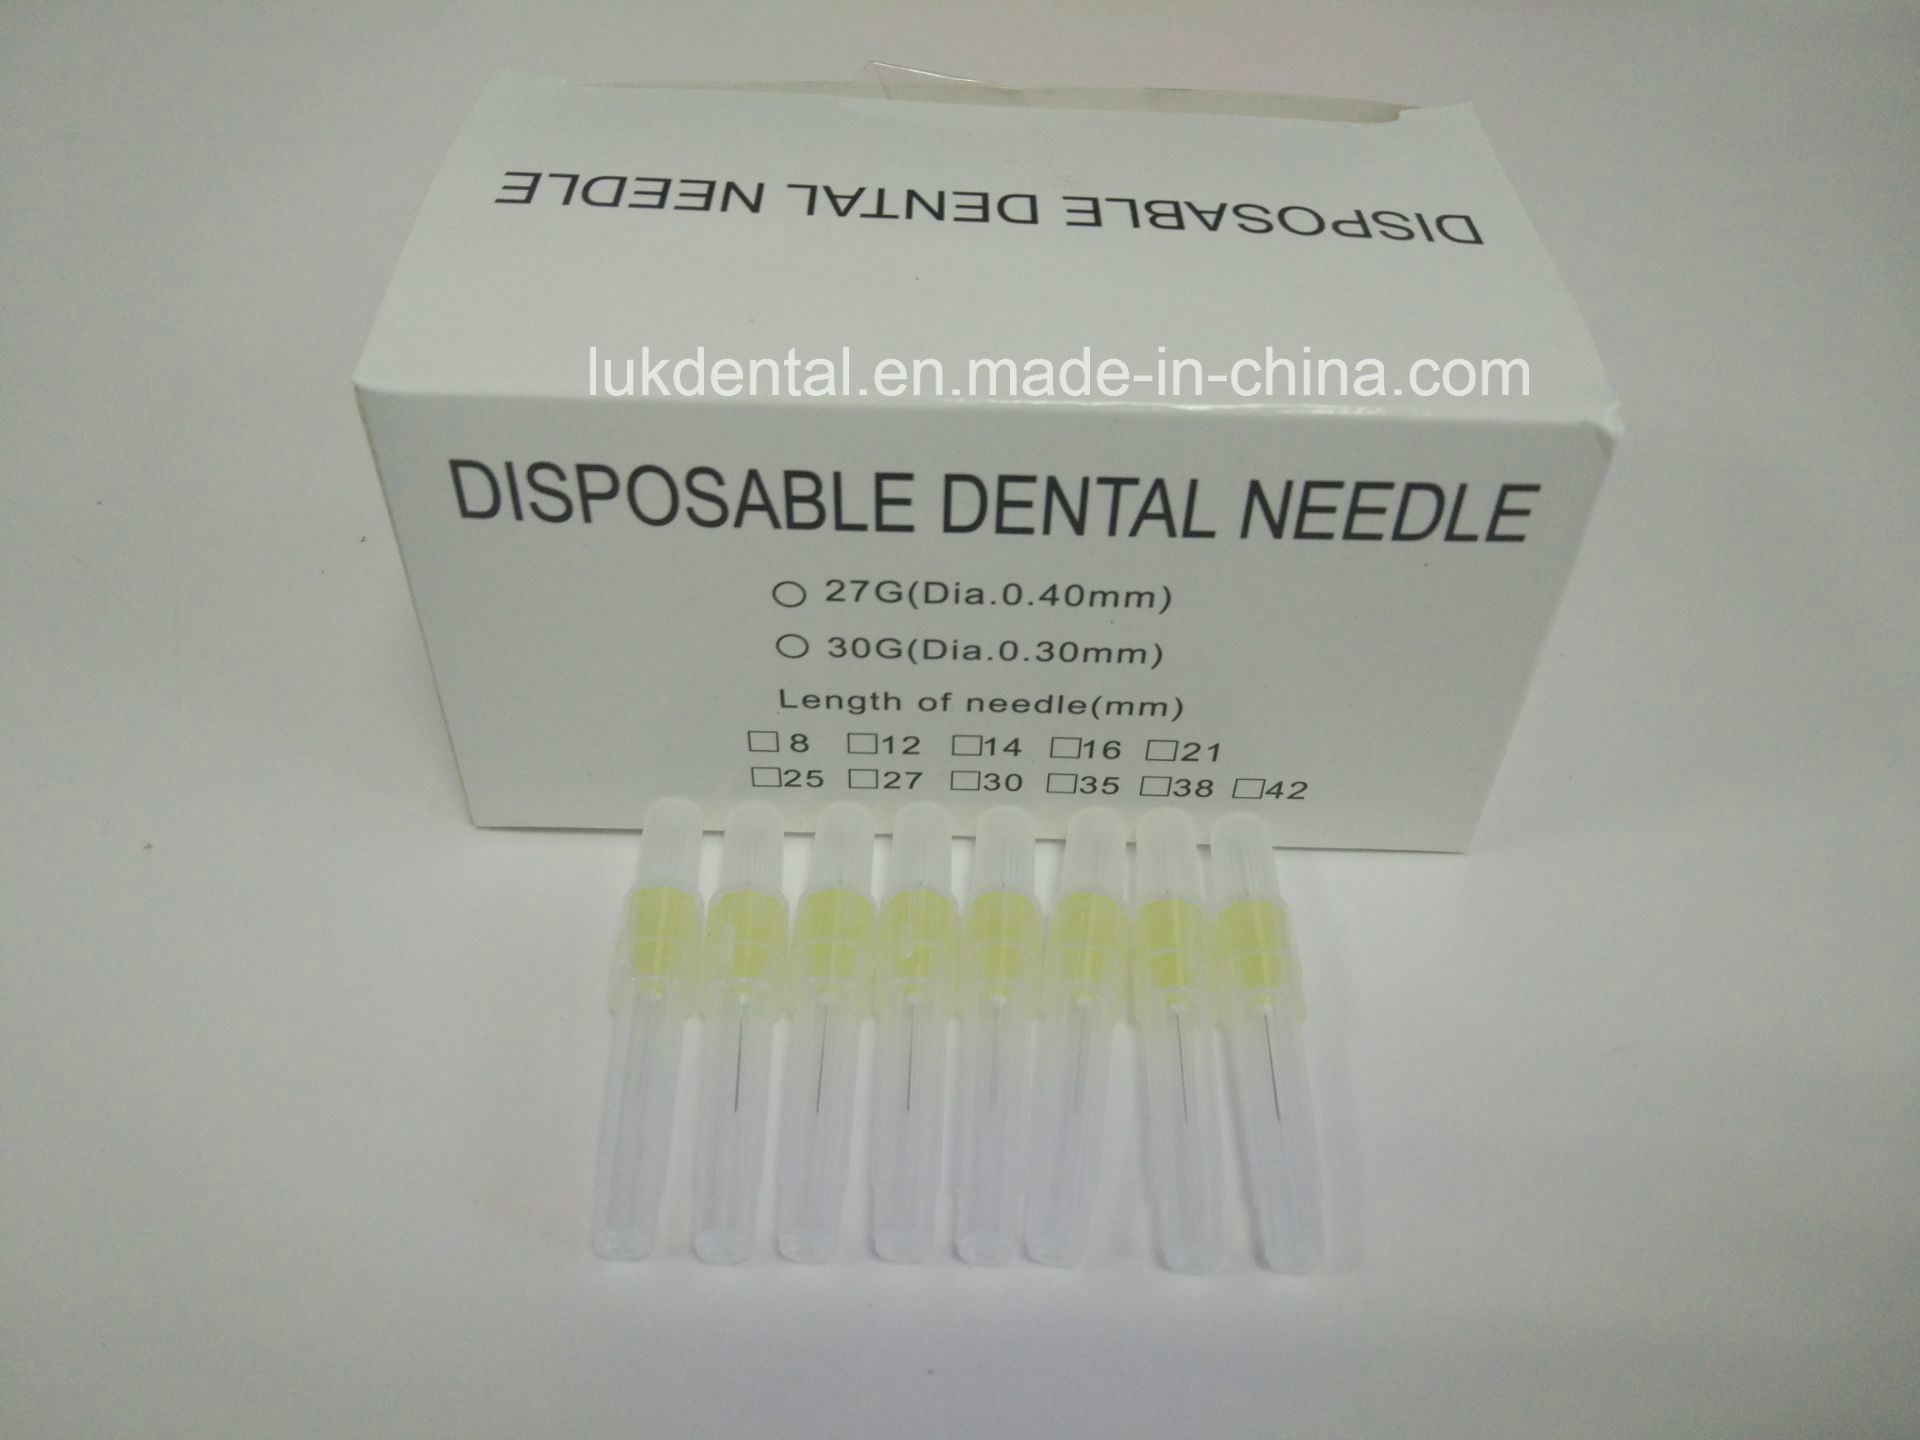 High Quality 25g, 27g, 30g Disposable Dental Needles for Dental Irrigation